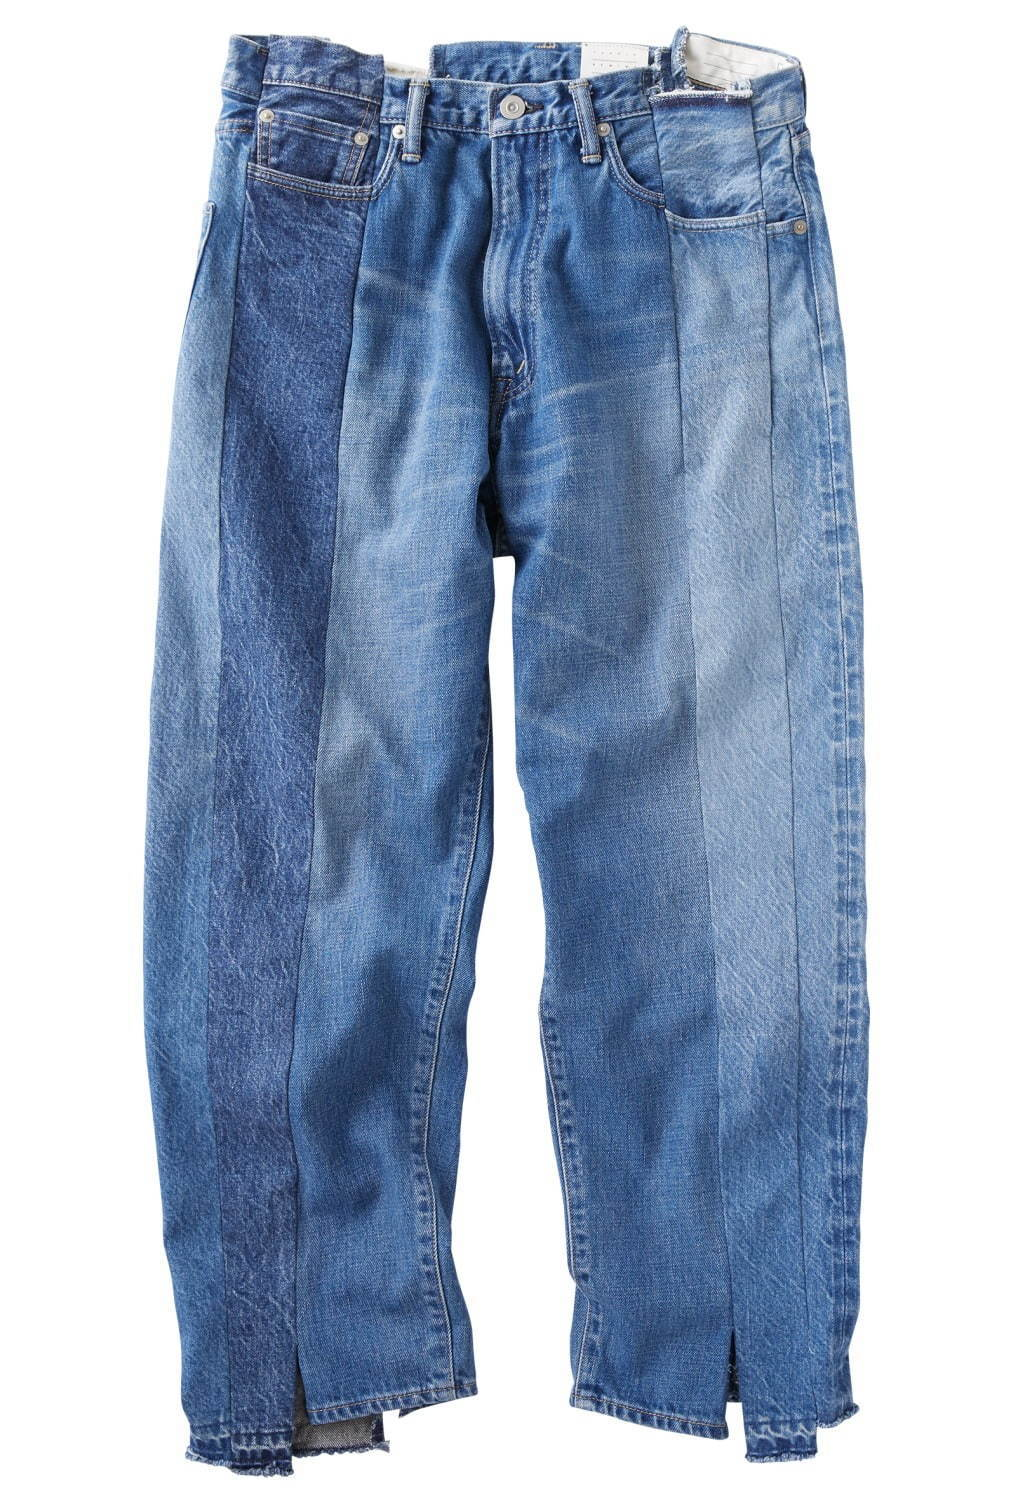 REMAKE DENIM MARK Ⅳ PANTS 48,000円+税